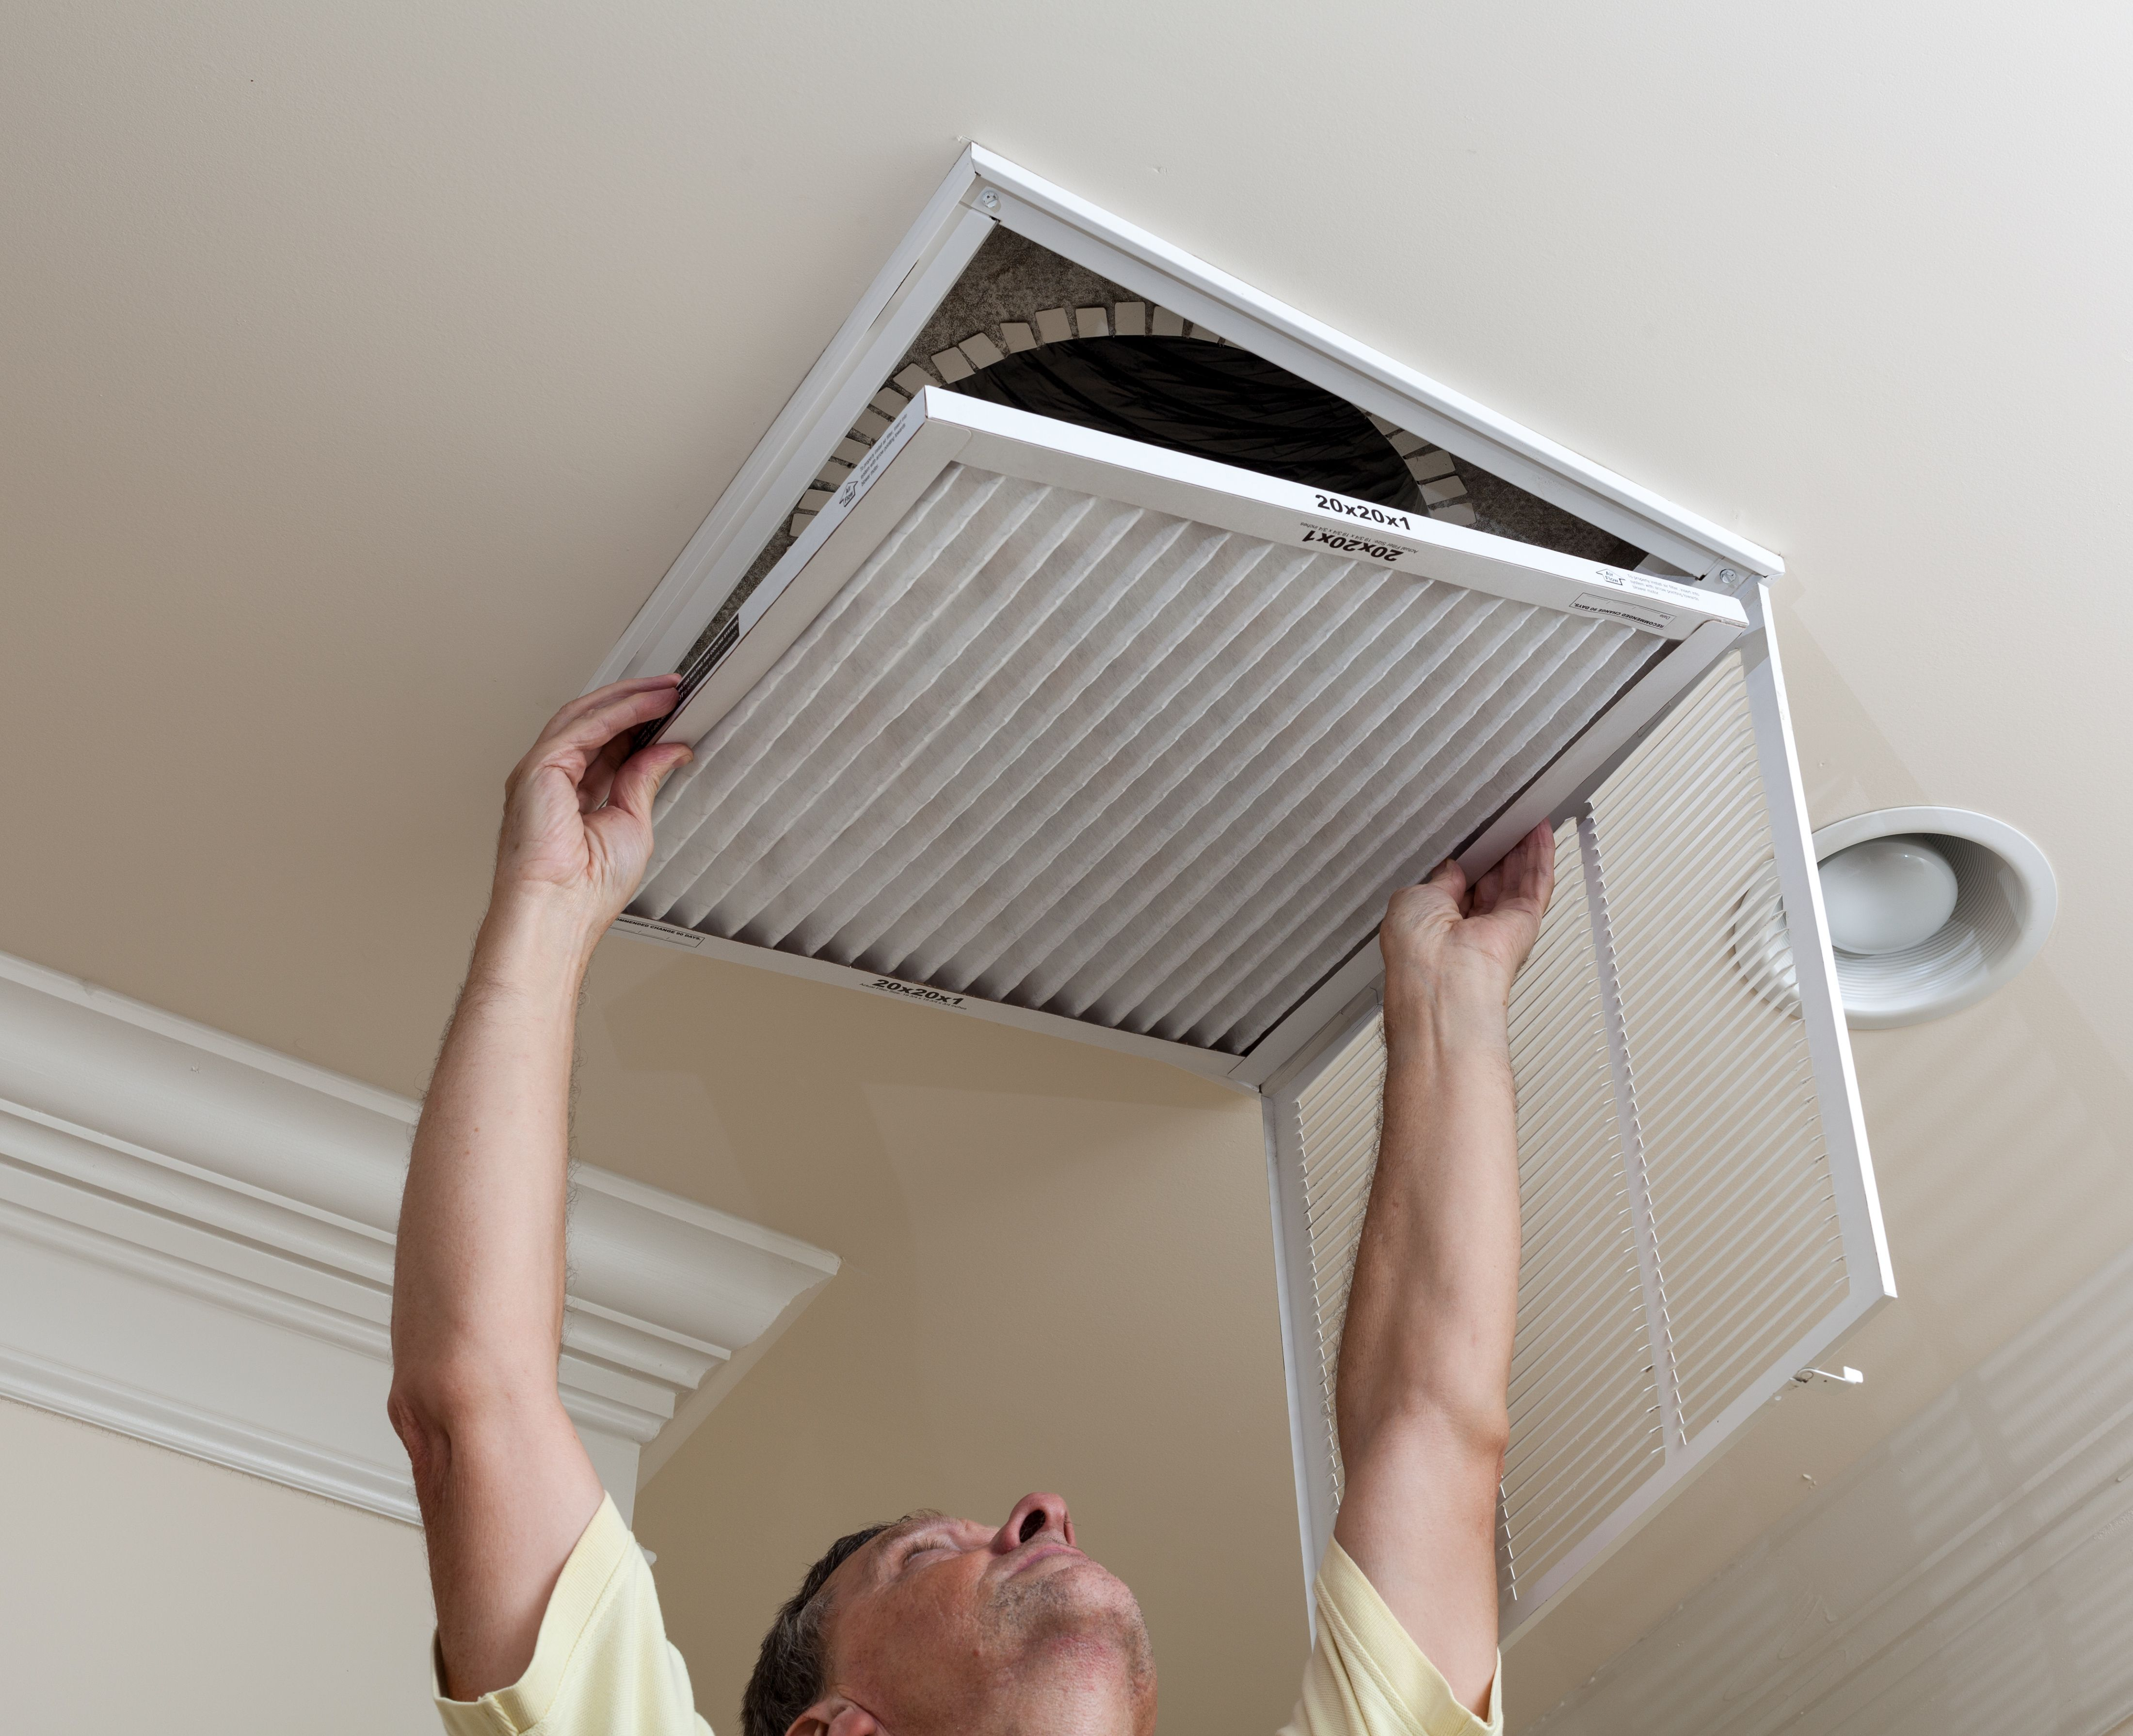 At Barron S Heating Air We Continually Strive To Exceed Expectation By Ensuring That Each Client Recei With Images Air Conditioning Repair Duct Cleaning Clean Air Ducts